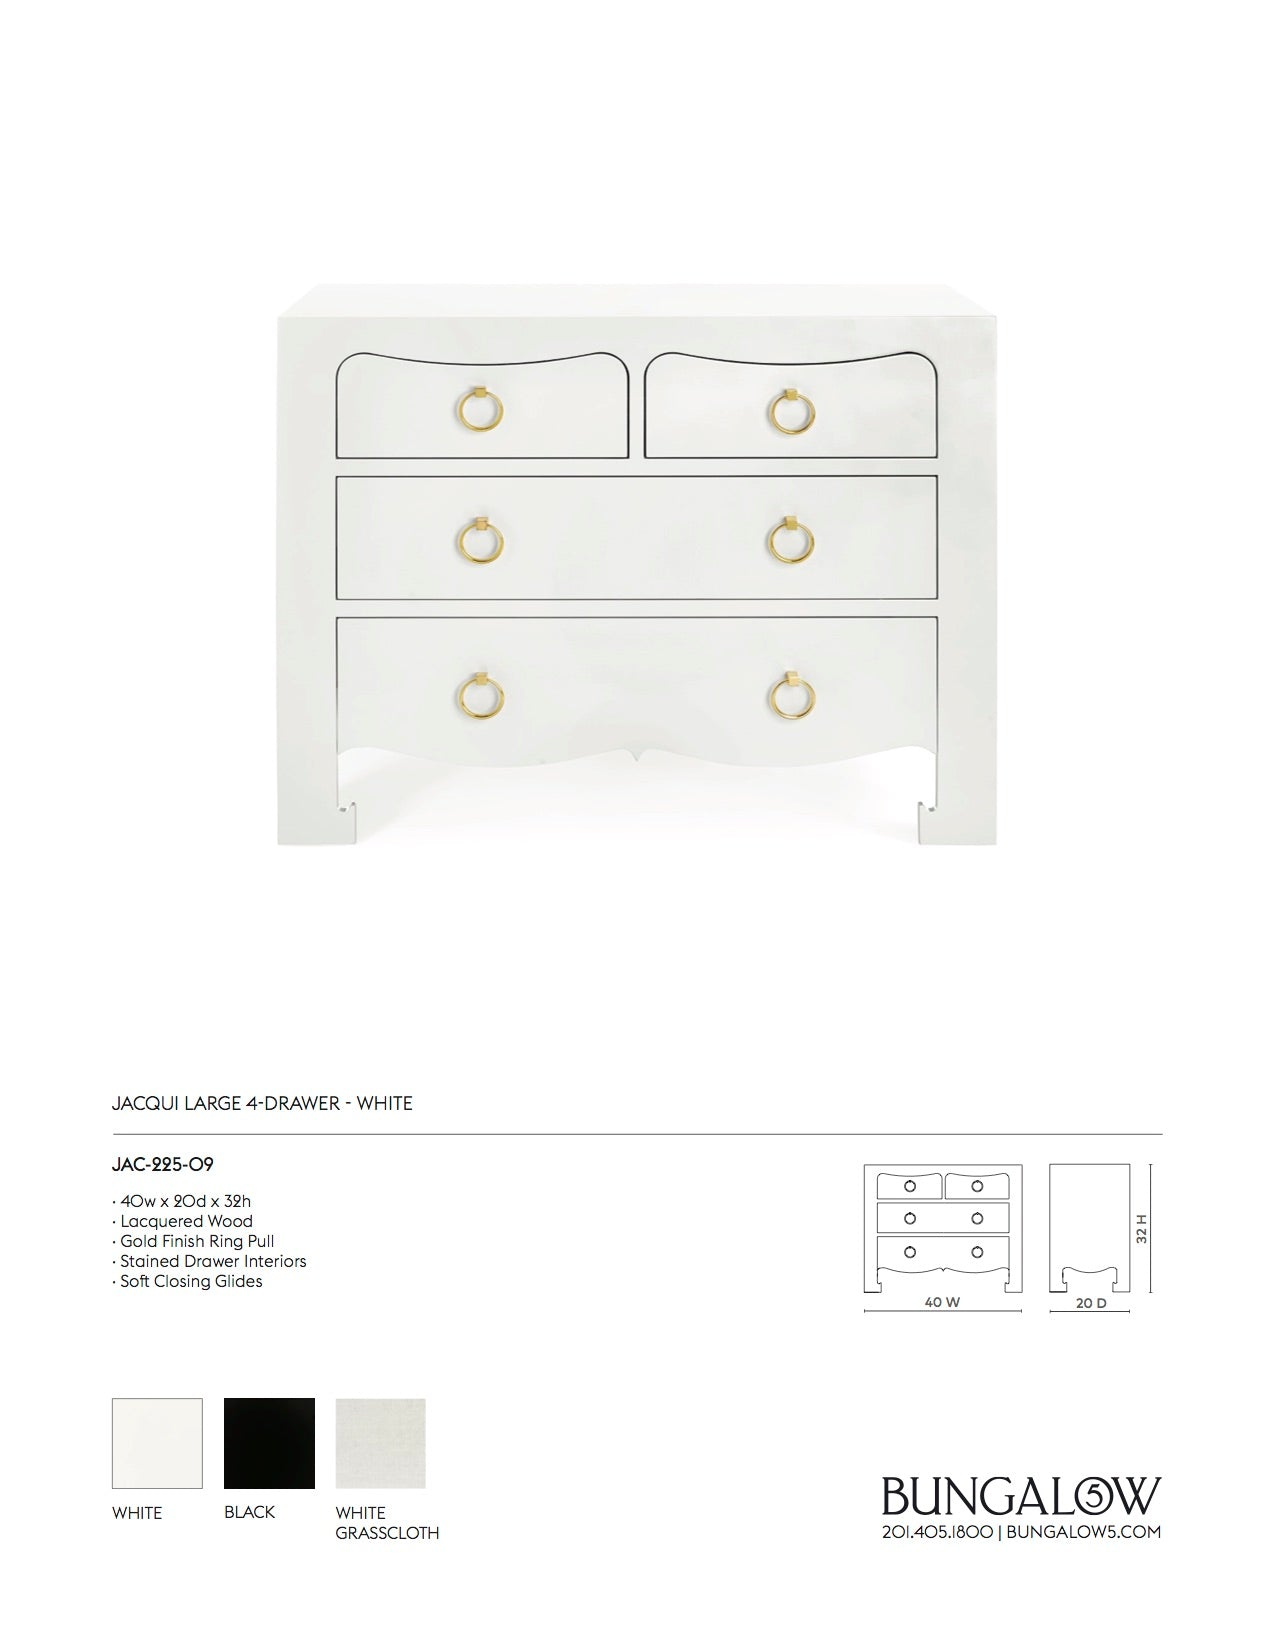 Bungalow 5 Jacqui Large 4 Drawer White Tearsheet